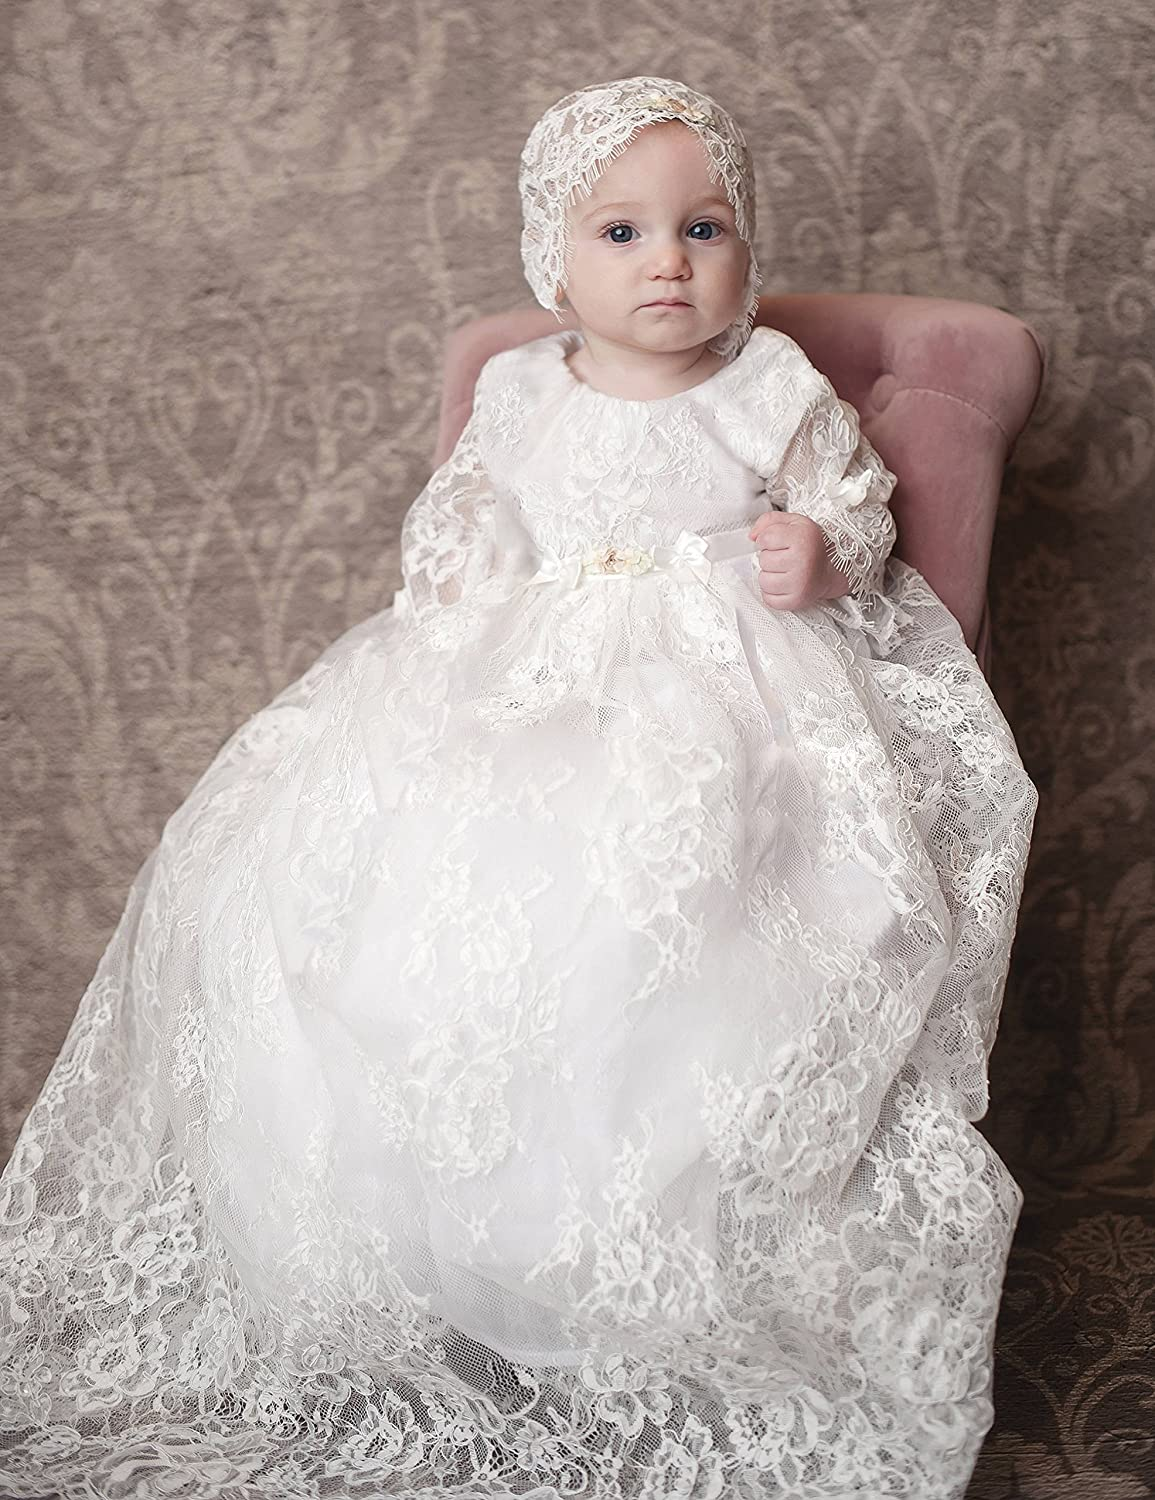 BuyBro Baby-Girls Long Ivory Lace Christening Dress Baptism Gown with Bonnet